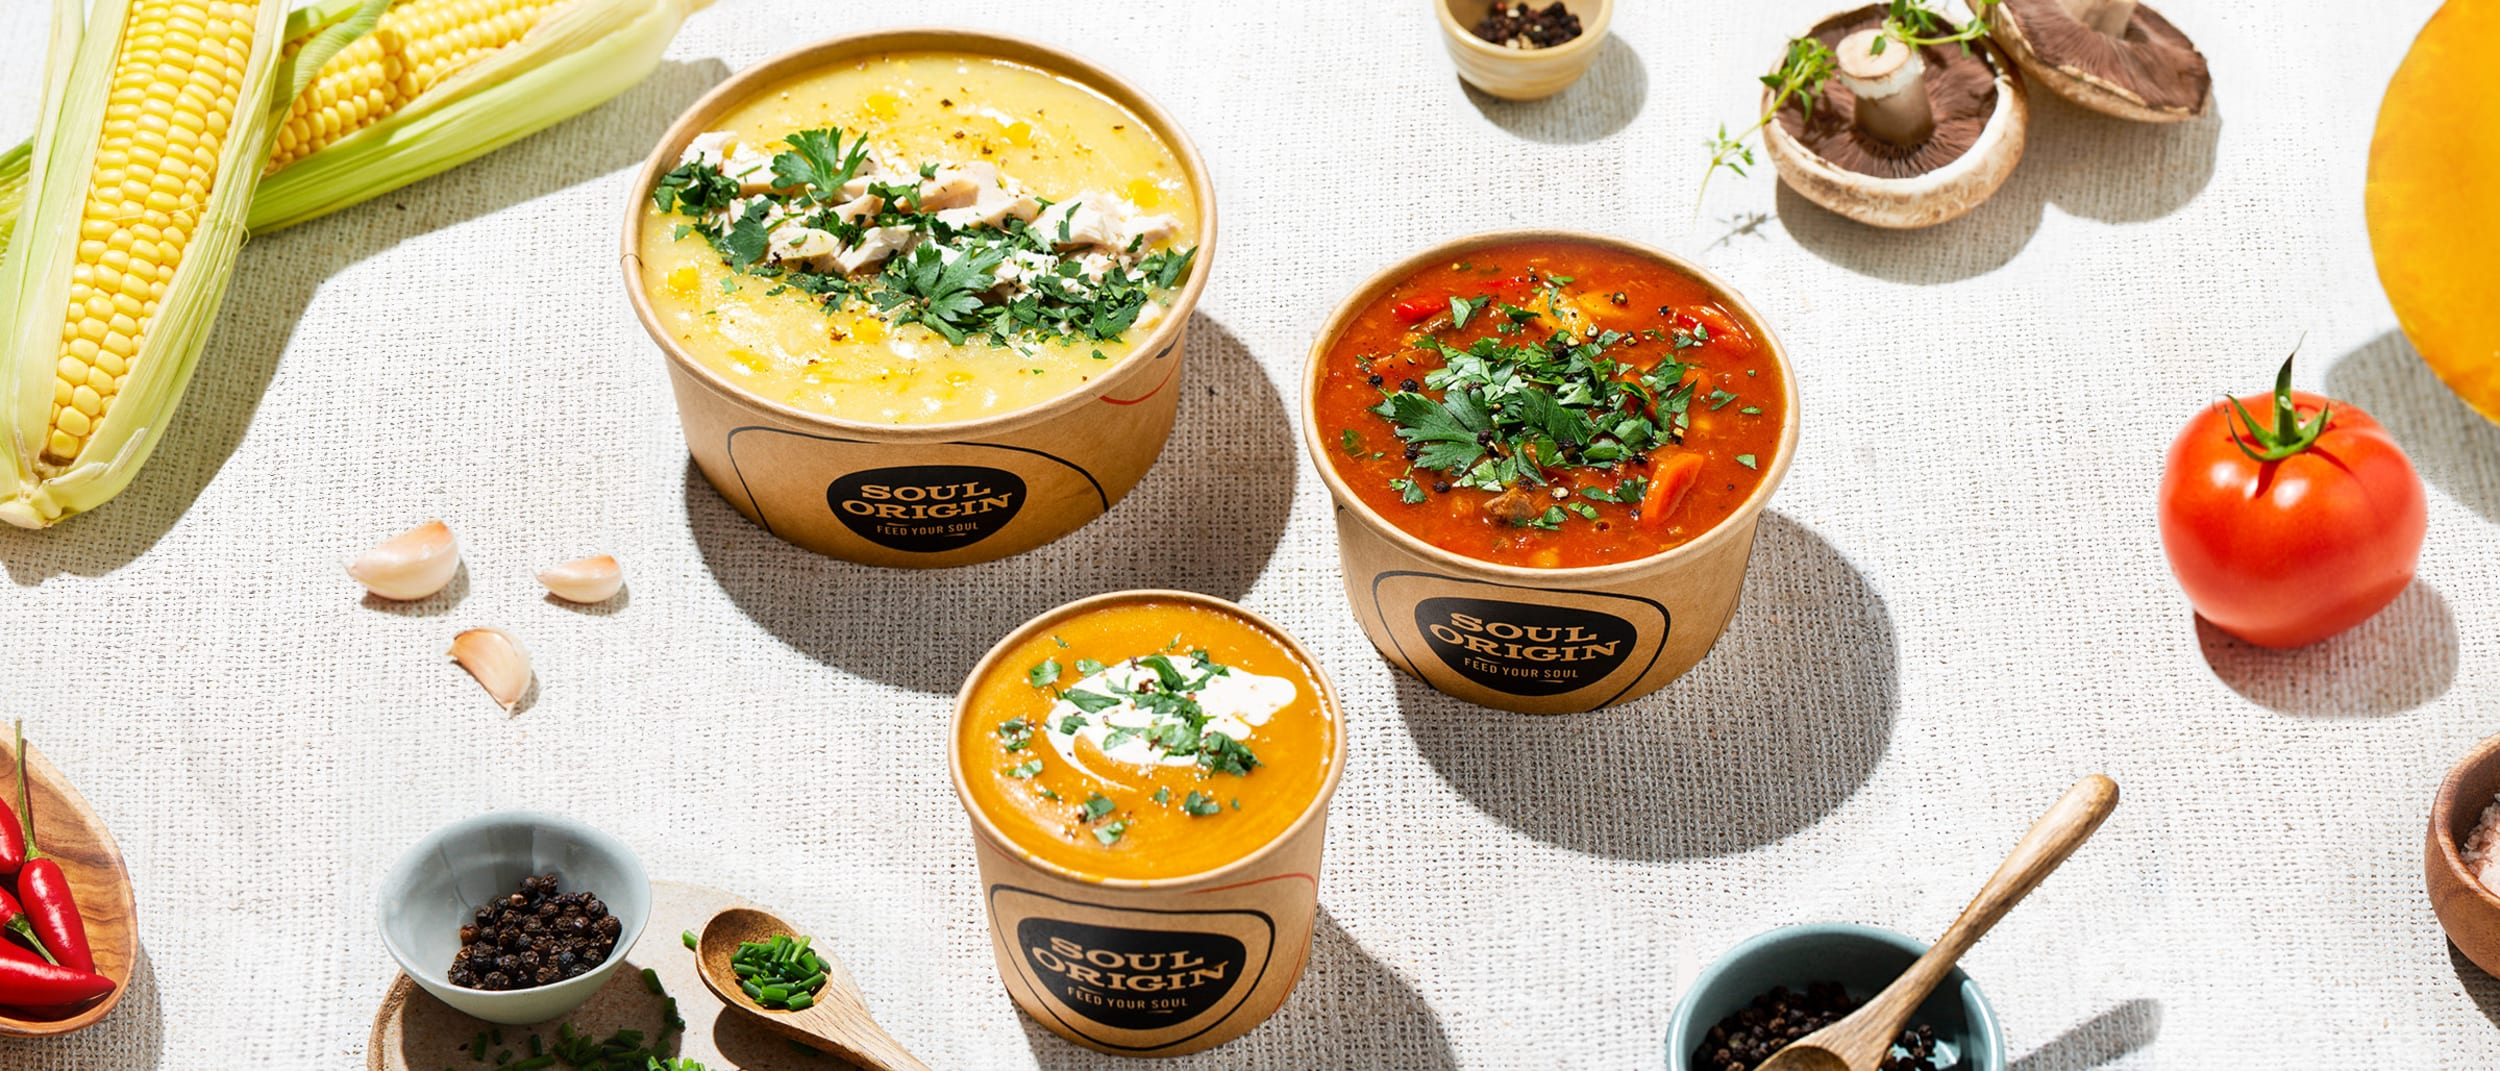 Soul Origin's launches new soups range